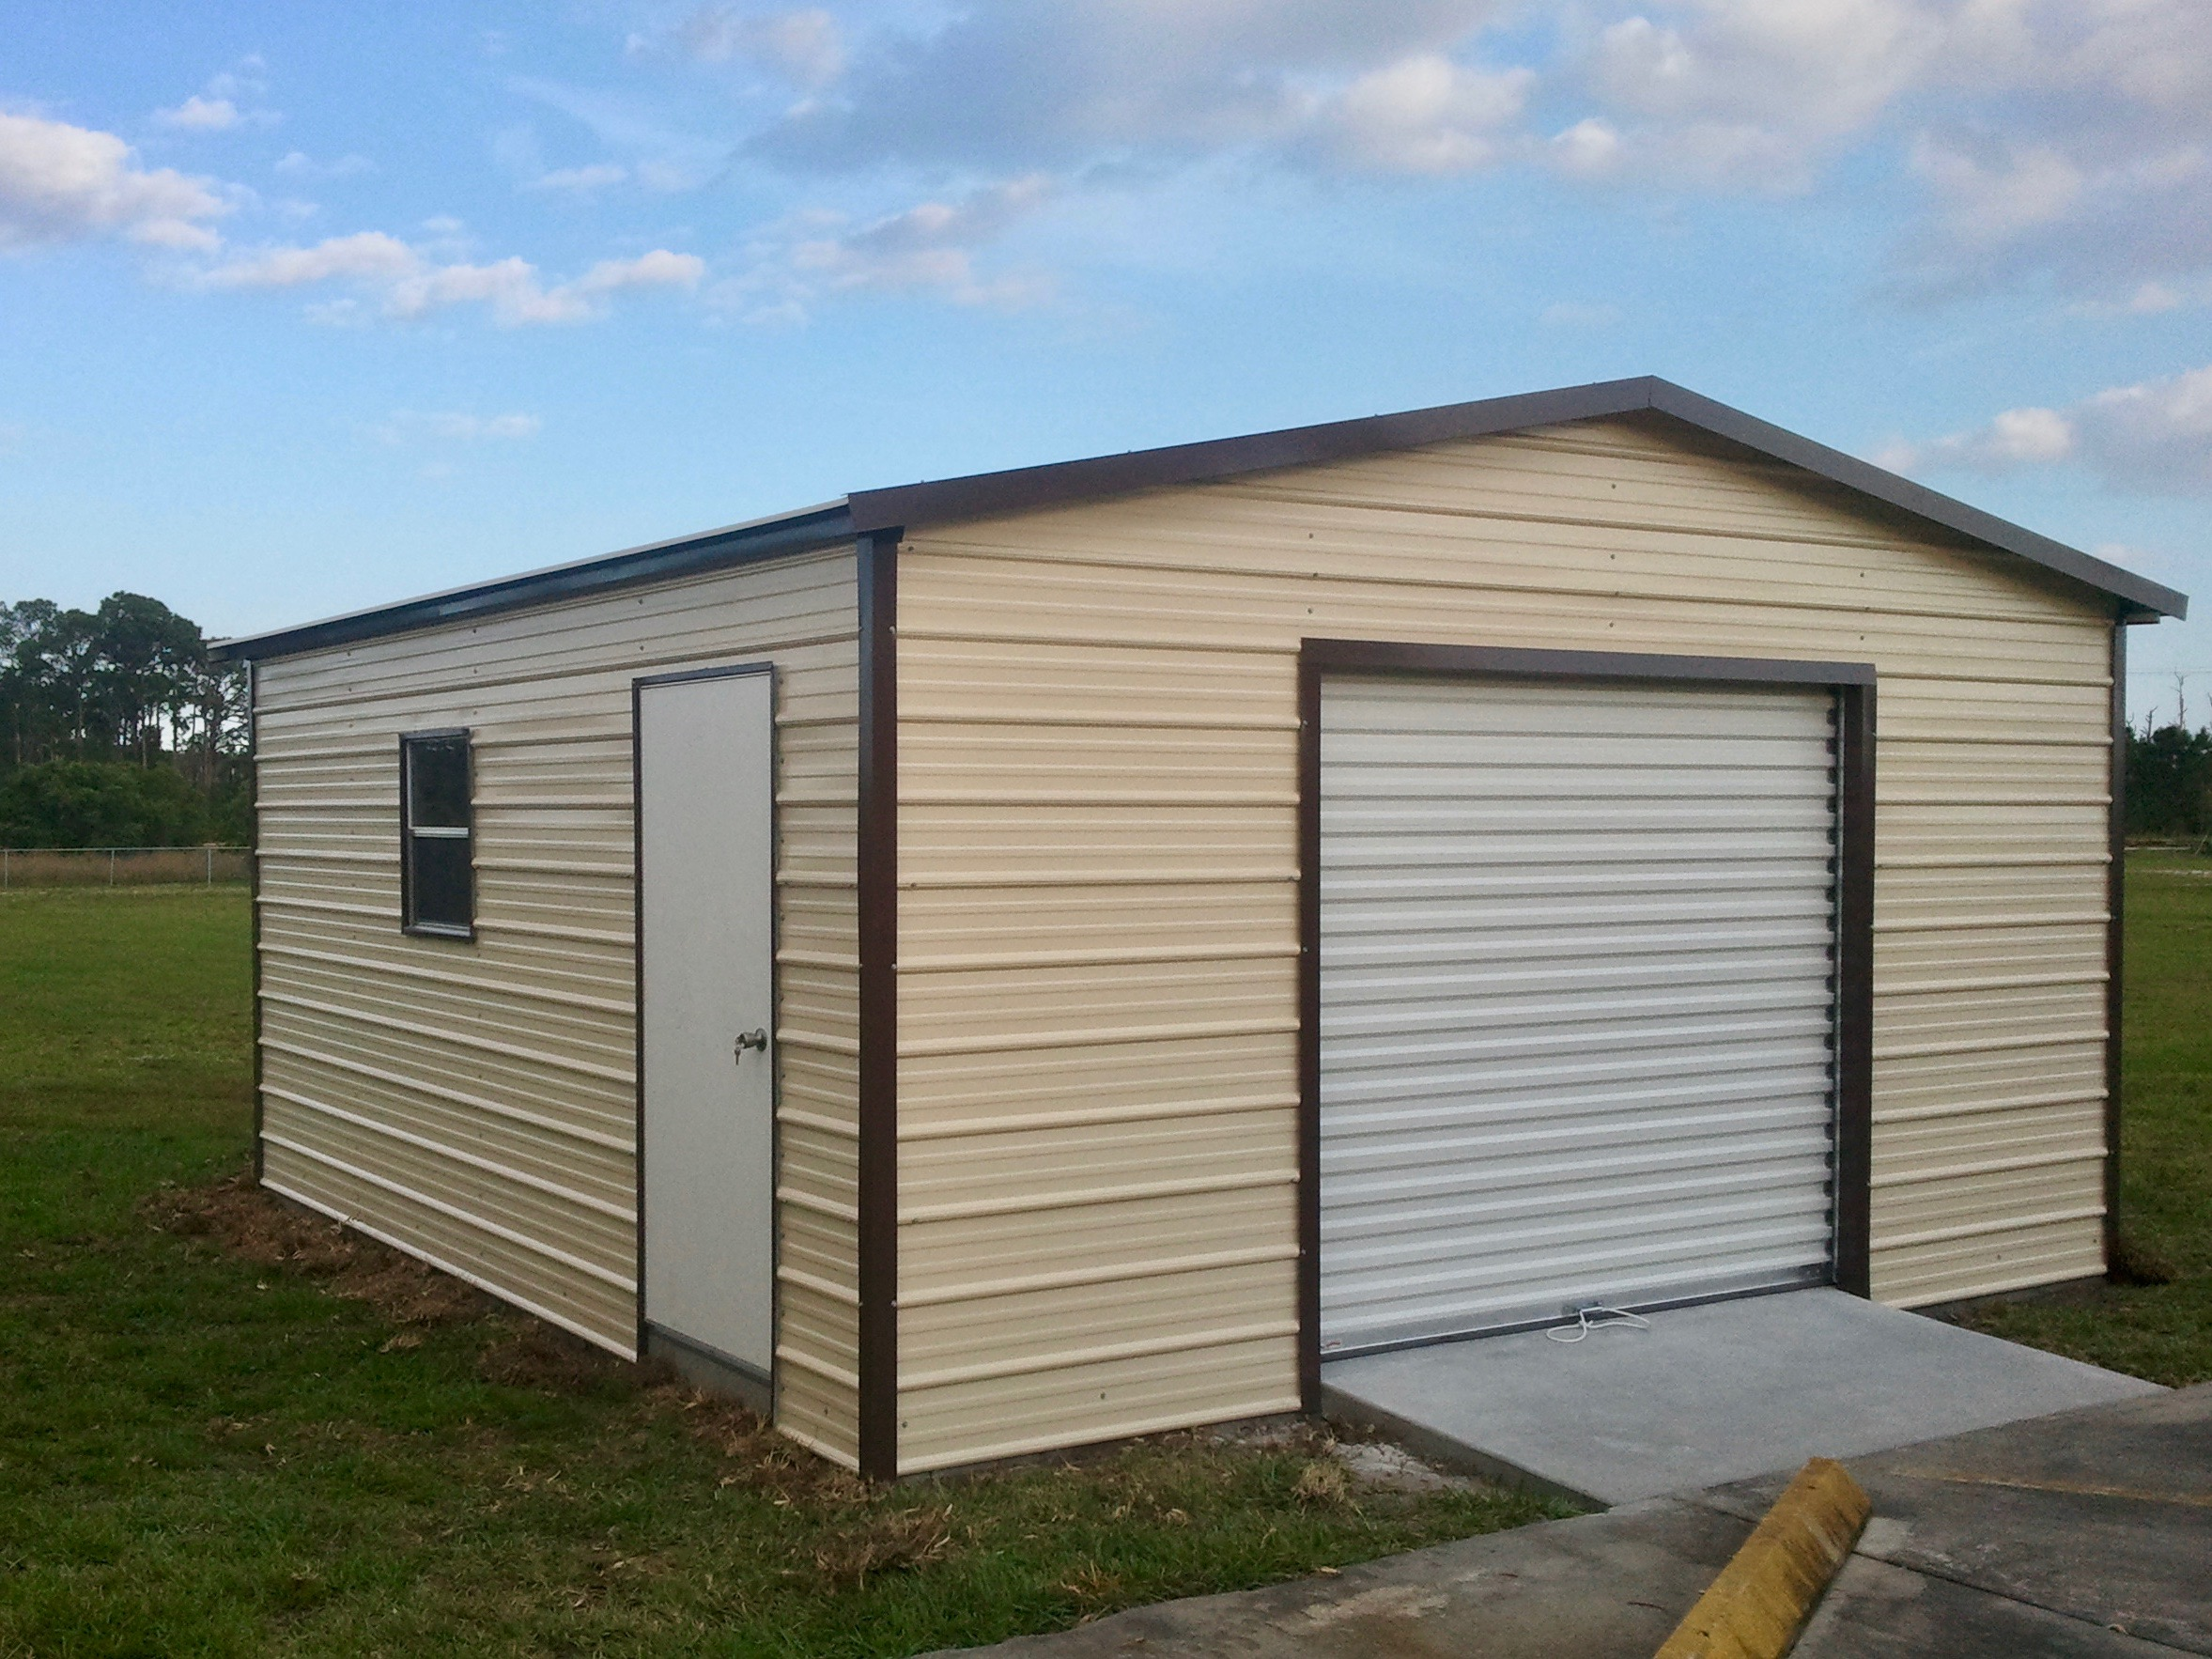 18x20 Garage Central Florida Steel Buildings And Supply